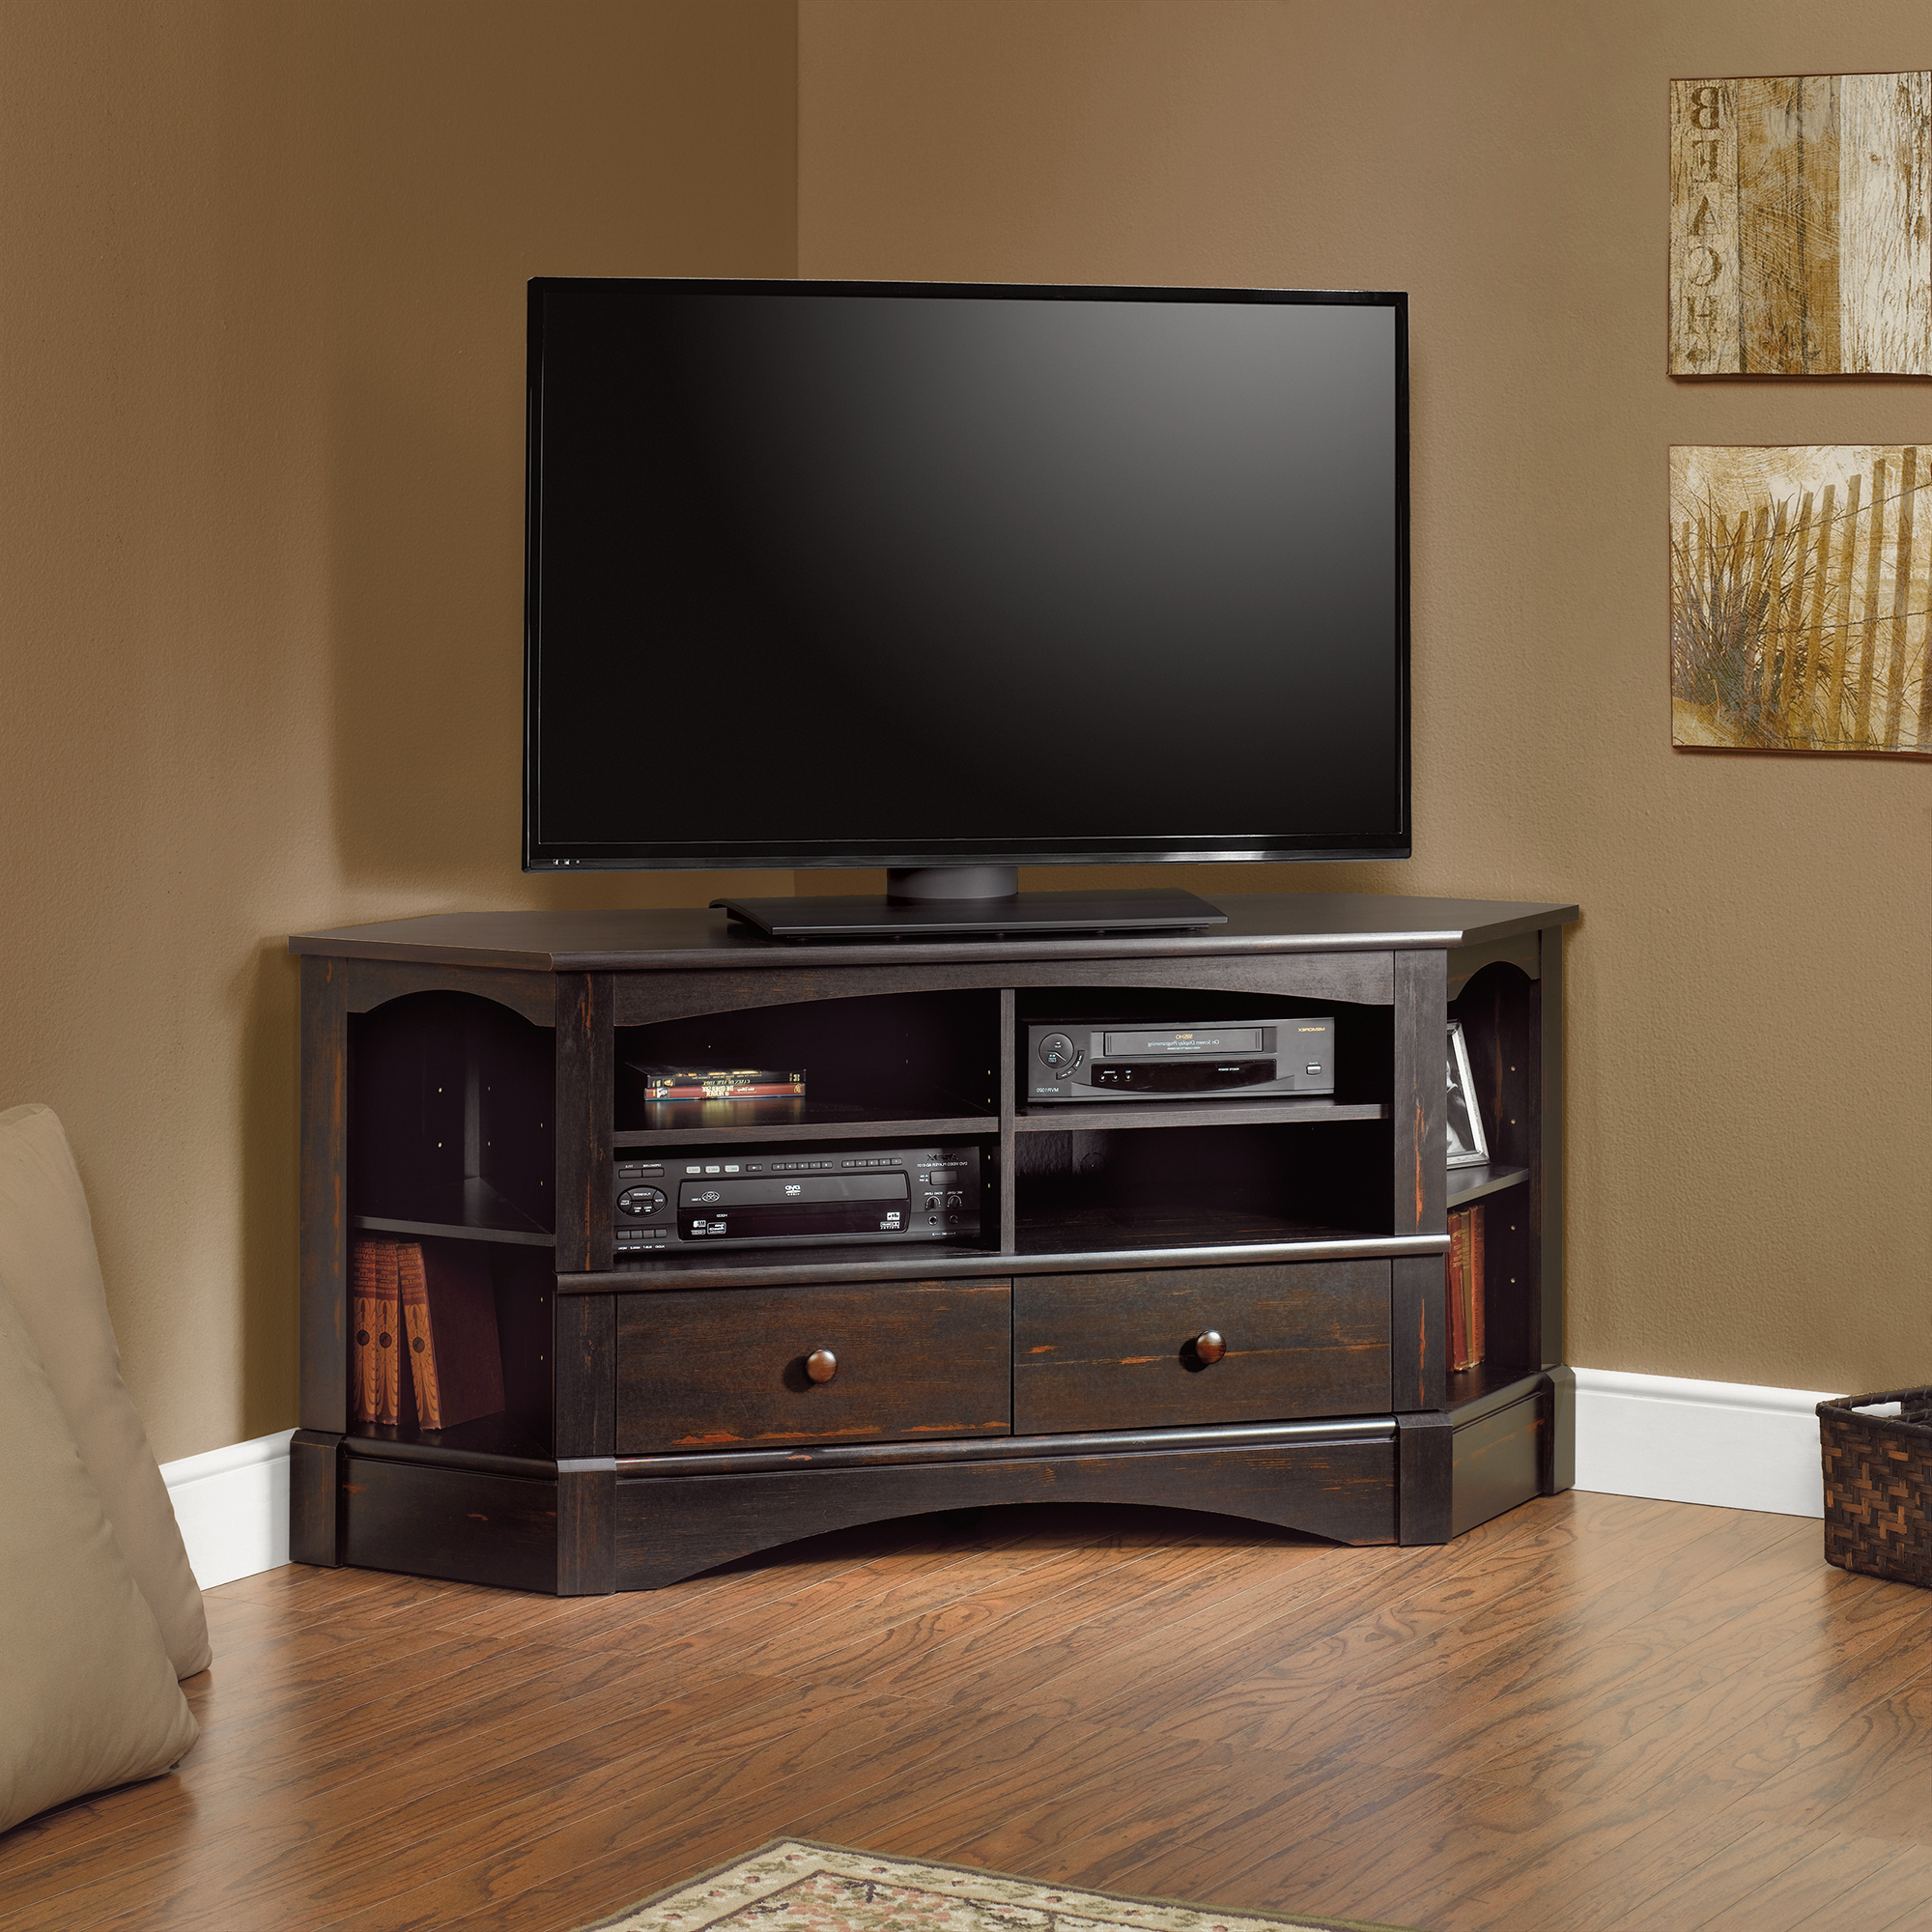 Sauder With Regard To Best And Newest Corner Tv Cabinets (View 6 of 20)